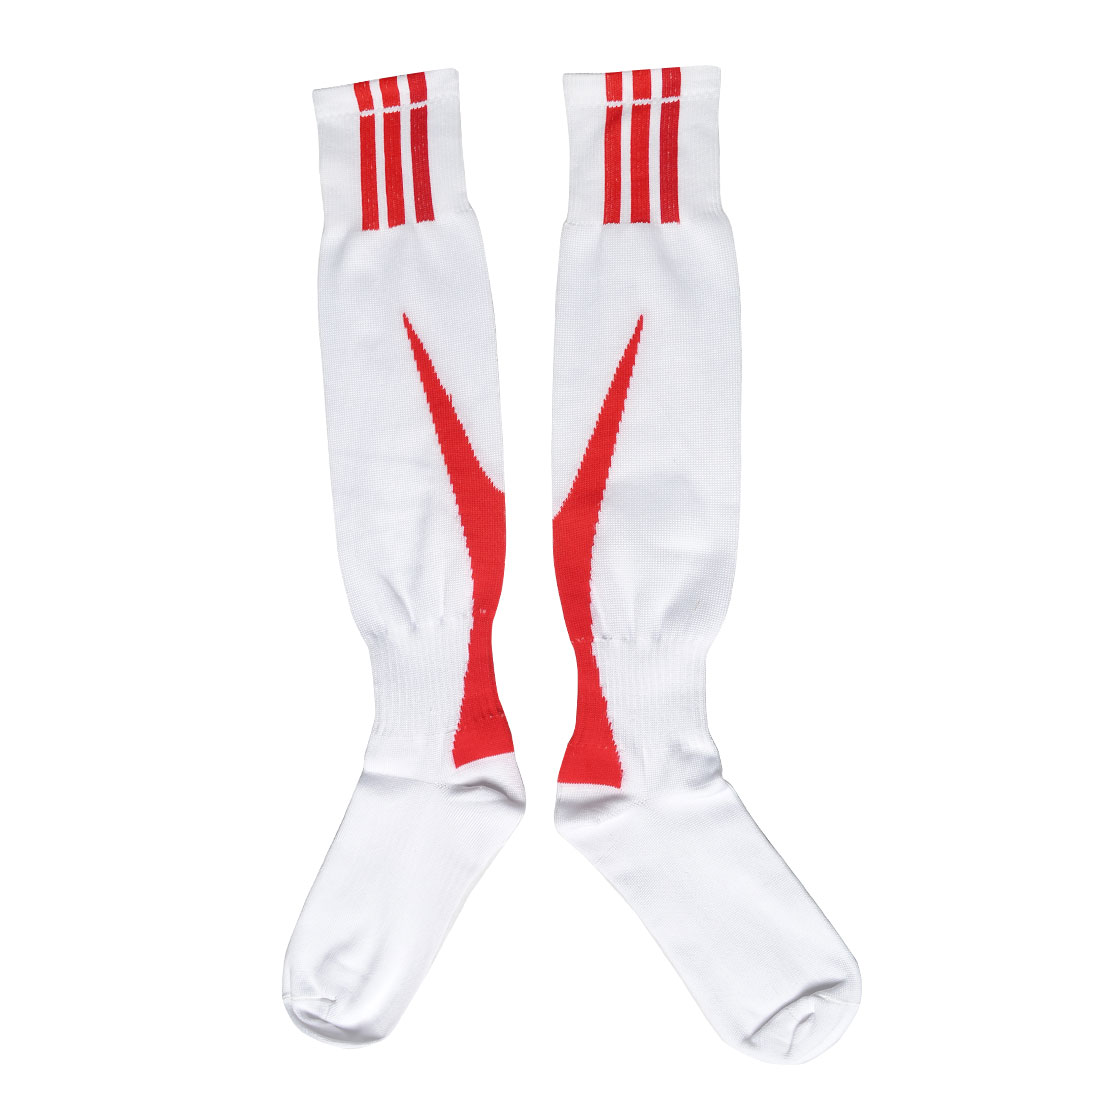 Boys Red Arrow Print Ribbed Stretch Sports Rugby Soccer Football Socks Pair